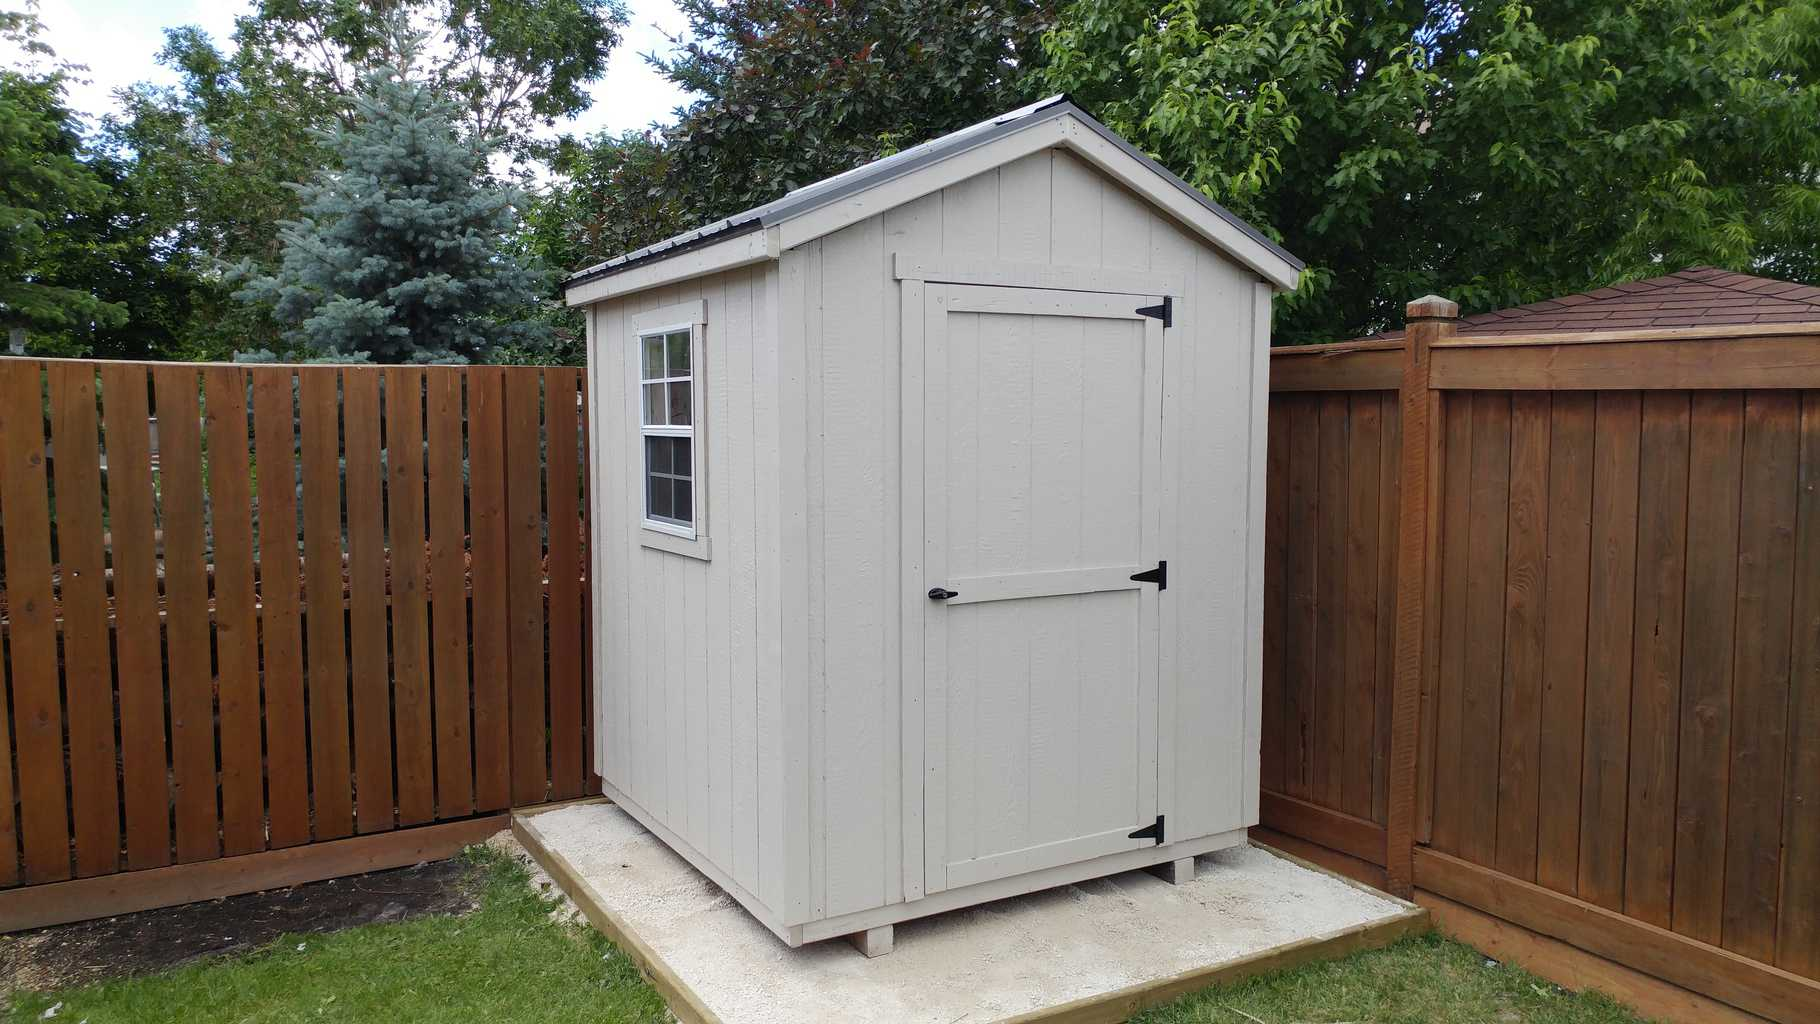 yard me sheds built collection pre barn shed near back for storage backyard wooden maxi